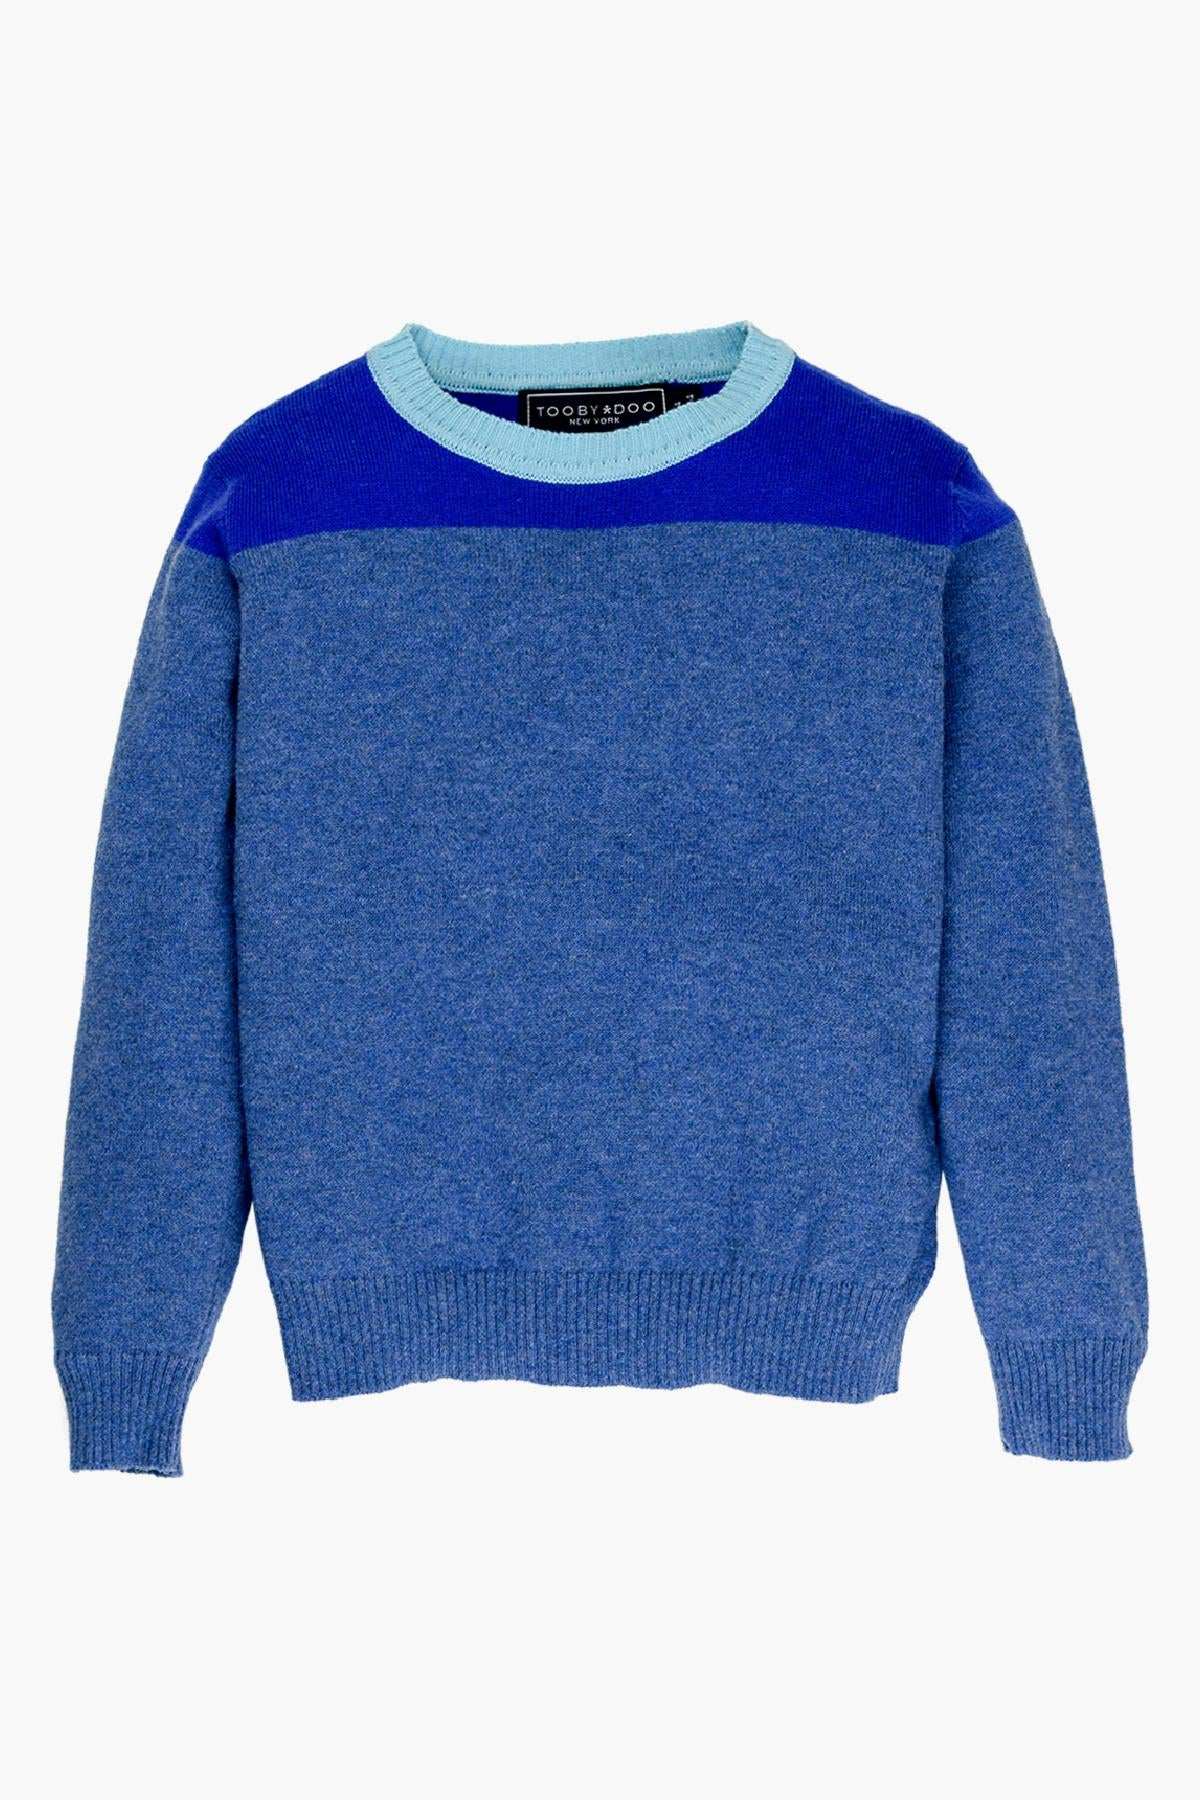 Toobydoo Cashmere Crewneck Sweater